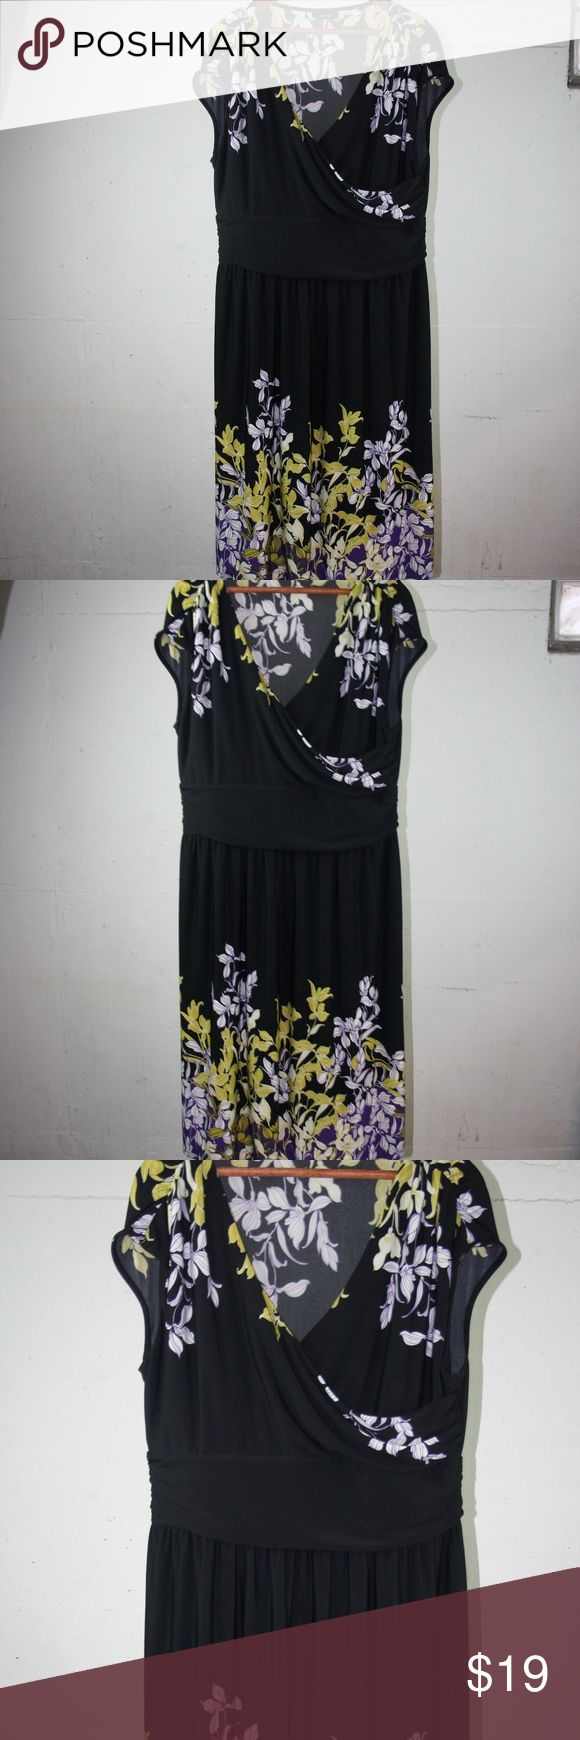 "Black, purple and green floral, V neck Dress. XL APT 9 Black dress, with purple and green floral design.  wide waist band and faux wrap/ v- neck line.  Sleeveless.  Worn once.  Size is XL (size tag is missing) 96% polyester/ 4% spandex Measures:  Shoulder to shoulder-19"" underarm to underarm-19"" Waist-16 "" Length (shoulder to hem) 40"" Thank you for your interest!   Z Apt. 9 Dresses"